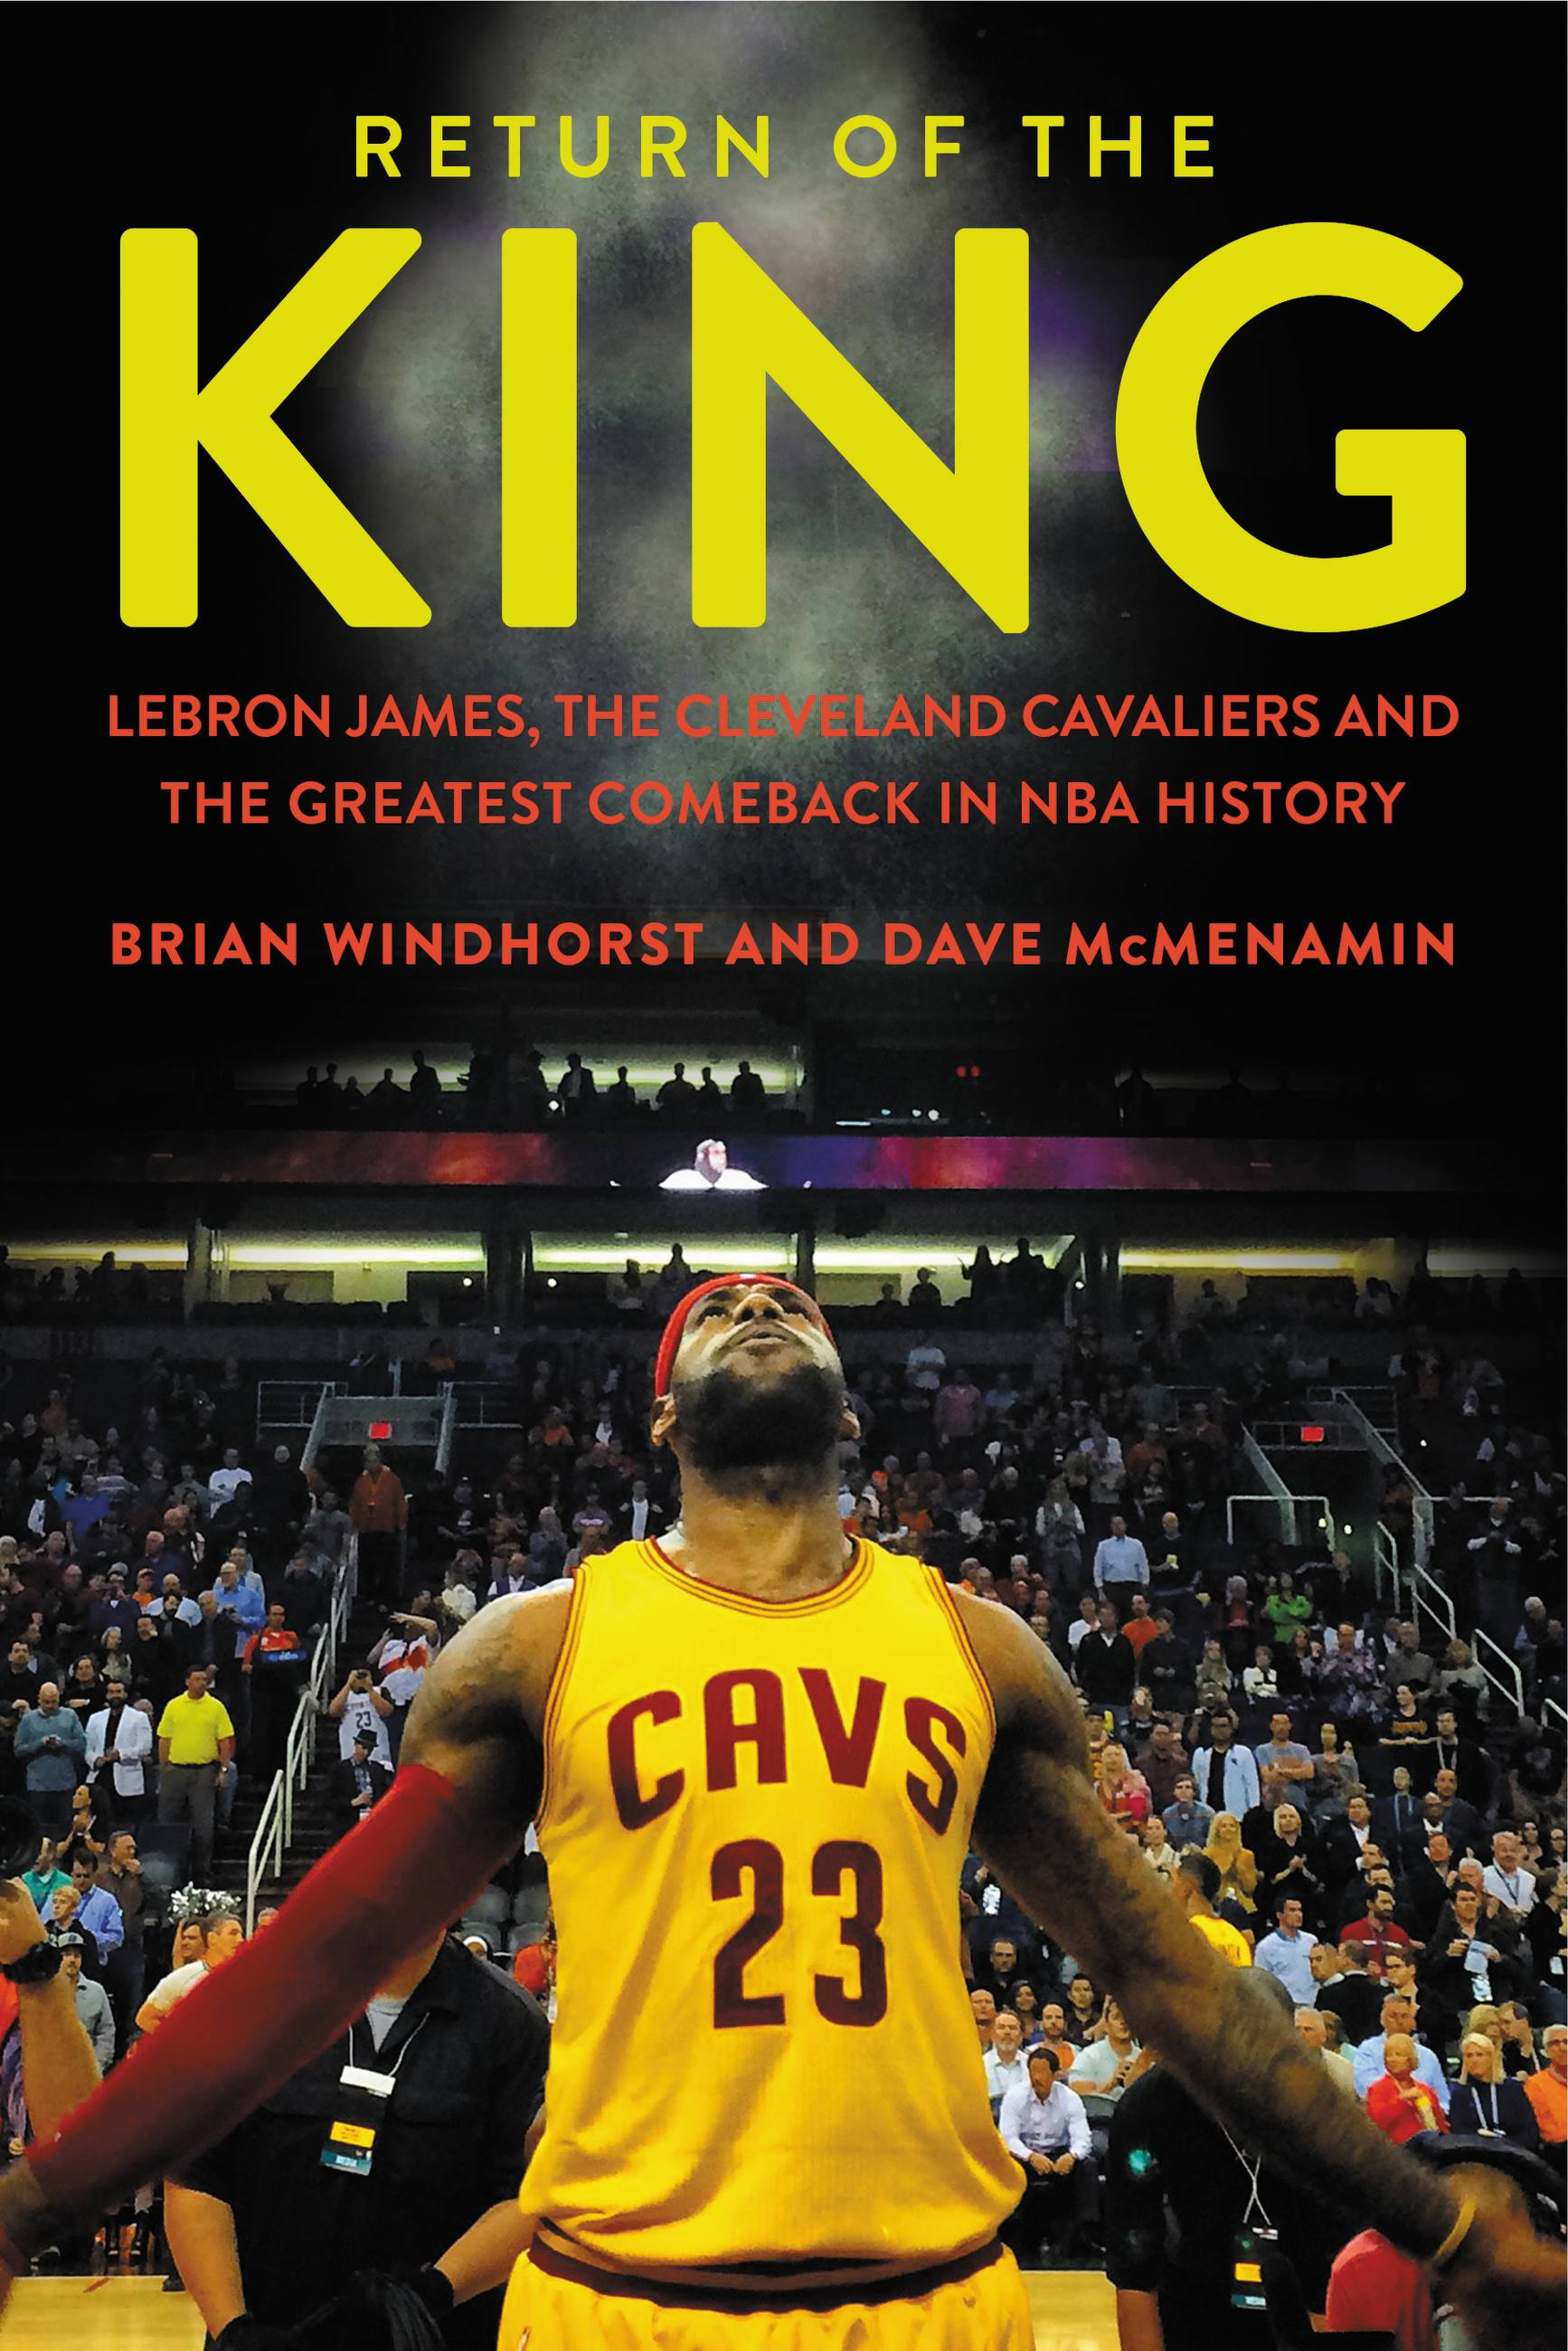 Return of the King LeBron James, the Cleveland Cavaliers, and the Greatest Comeback in NBA History